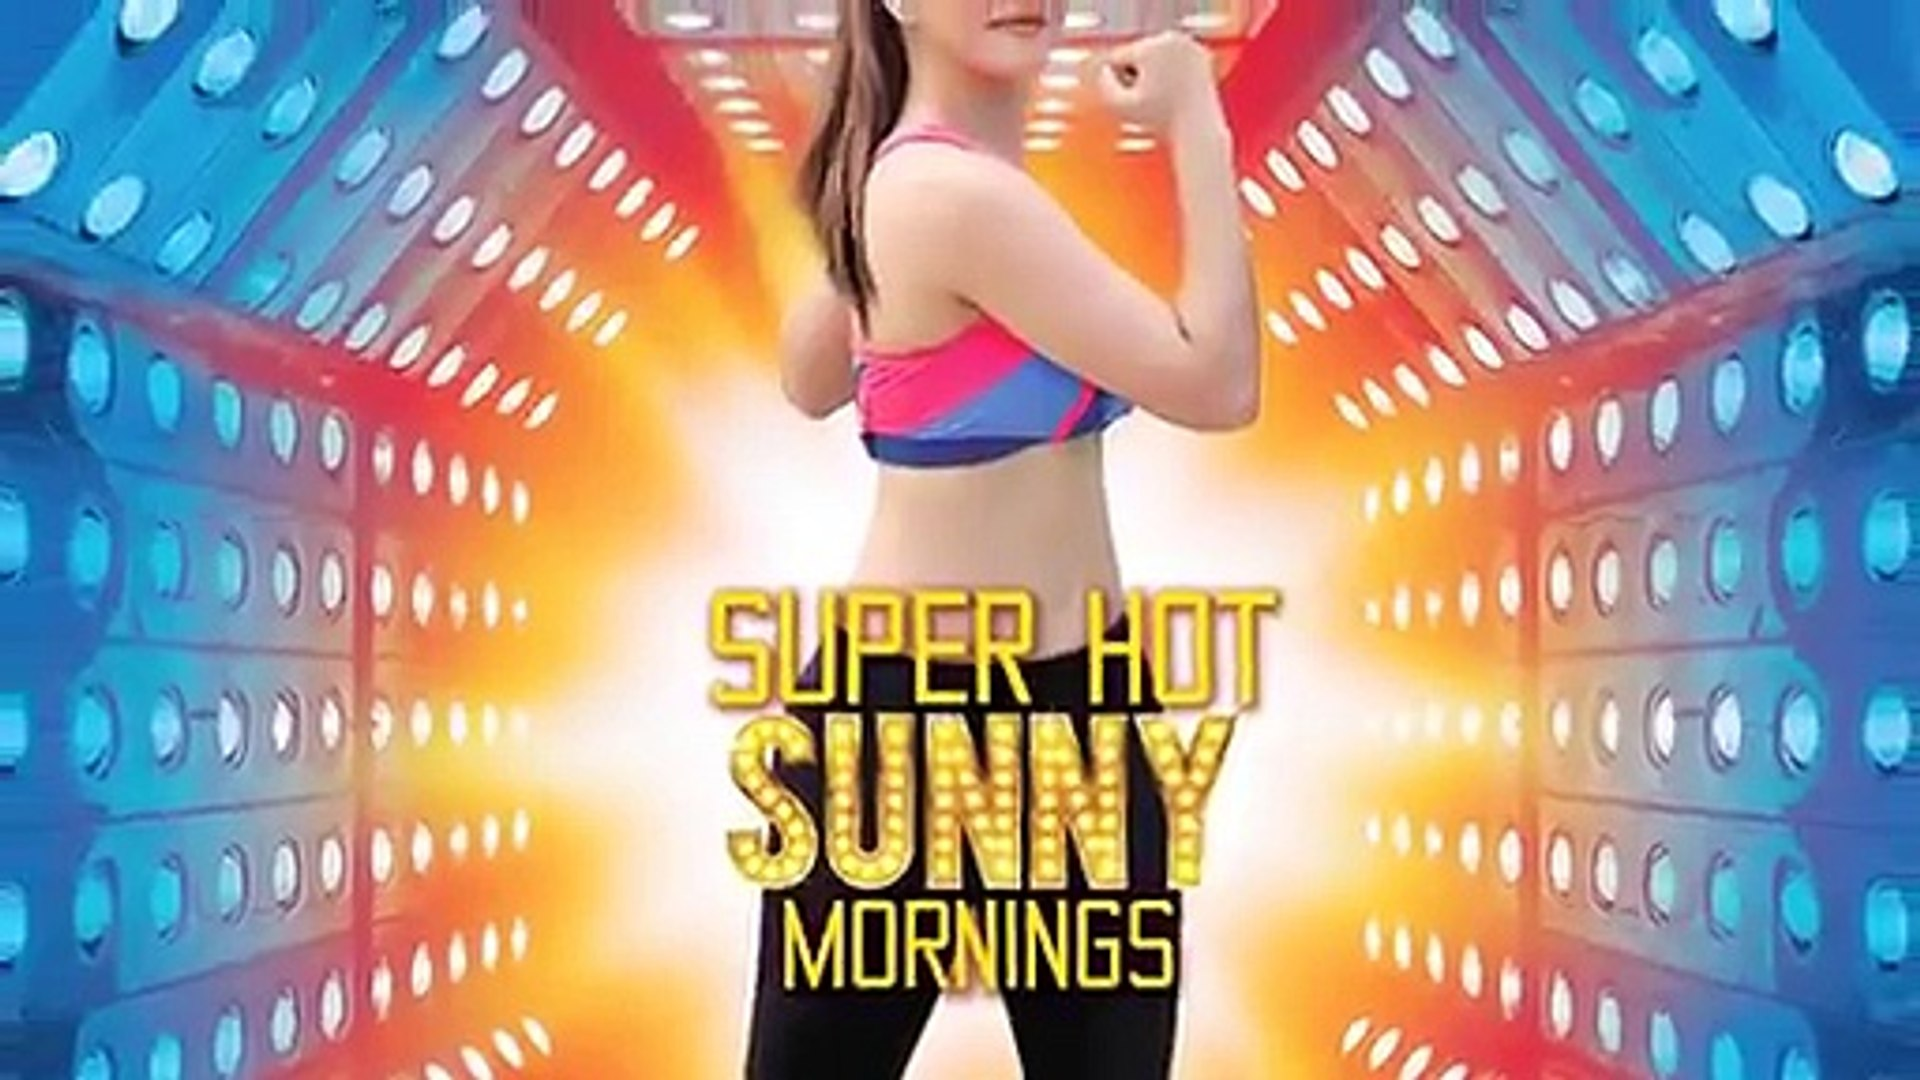 Sunny Leone Workout In 'Super Sunny Morning' Teaser